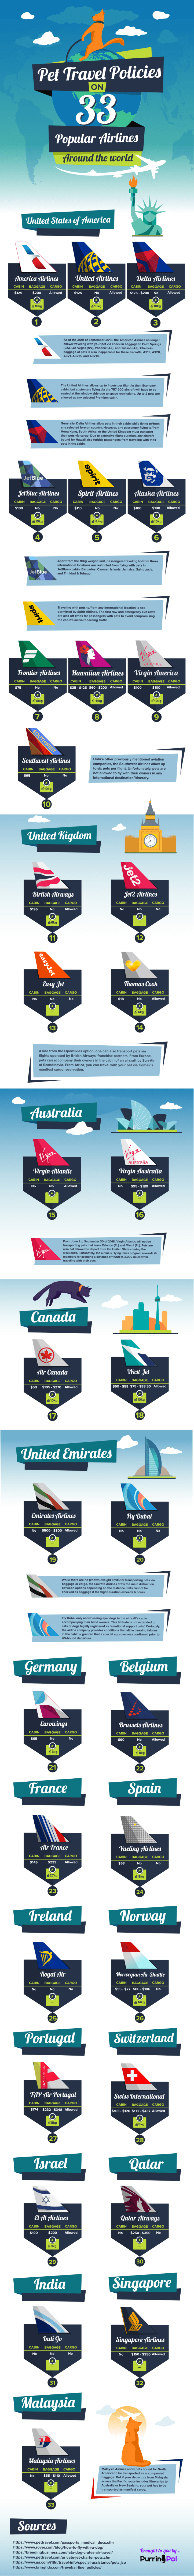 [Infographic] Pet Travel Policies